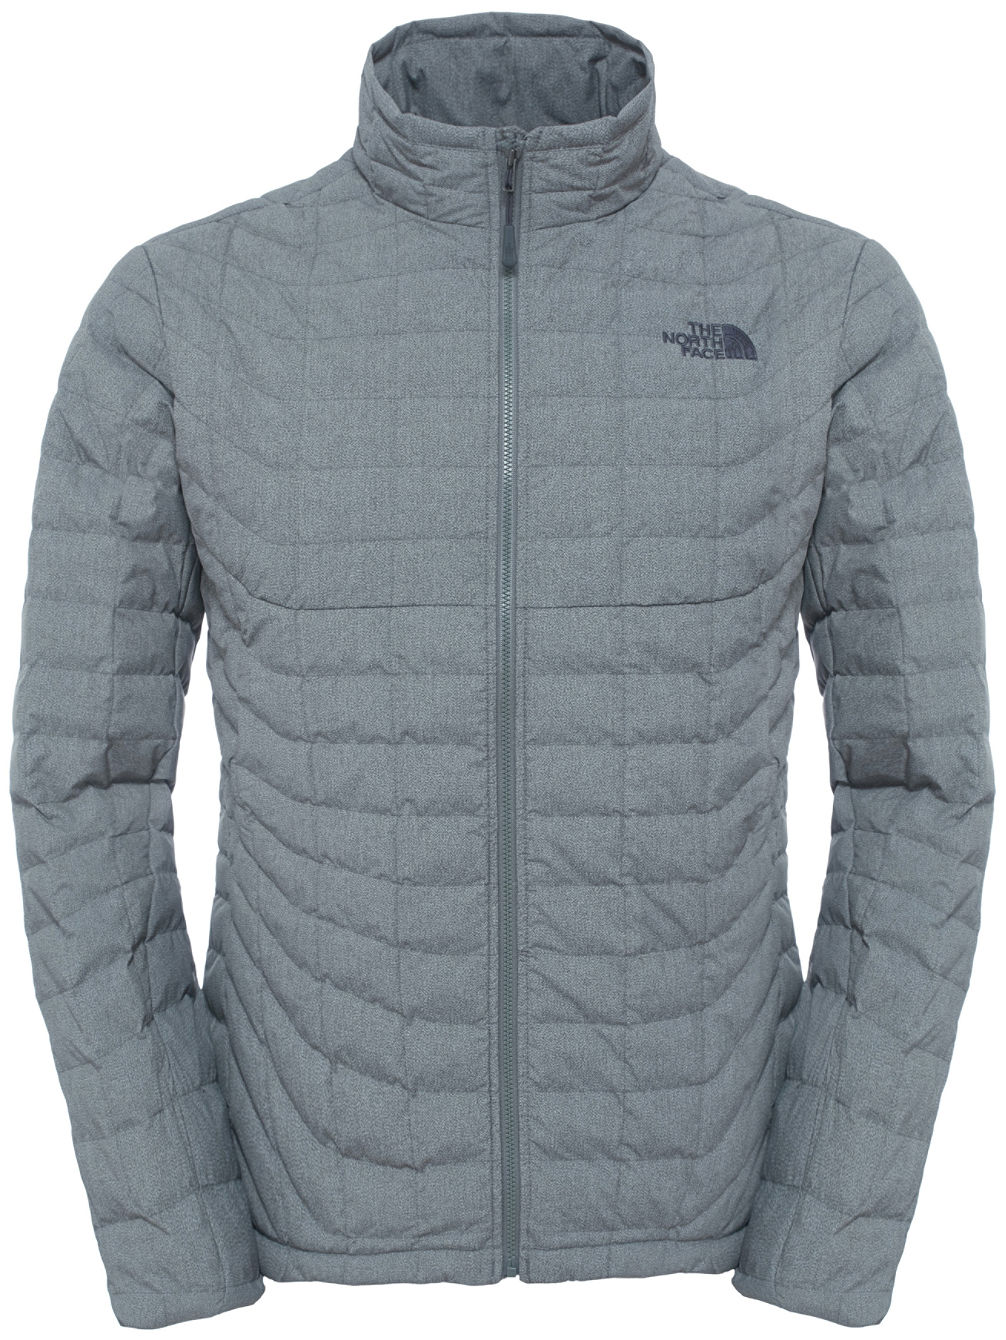 Thermoball Full Zip Outdoor Jacket